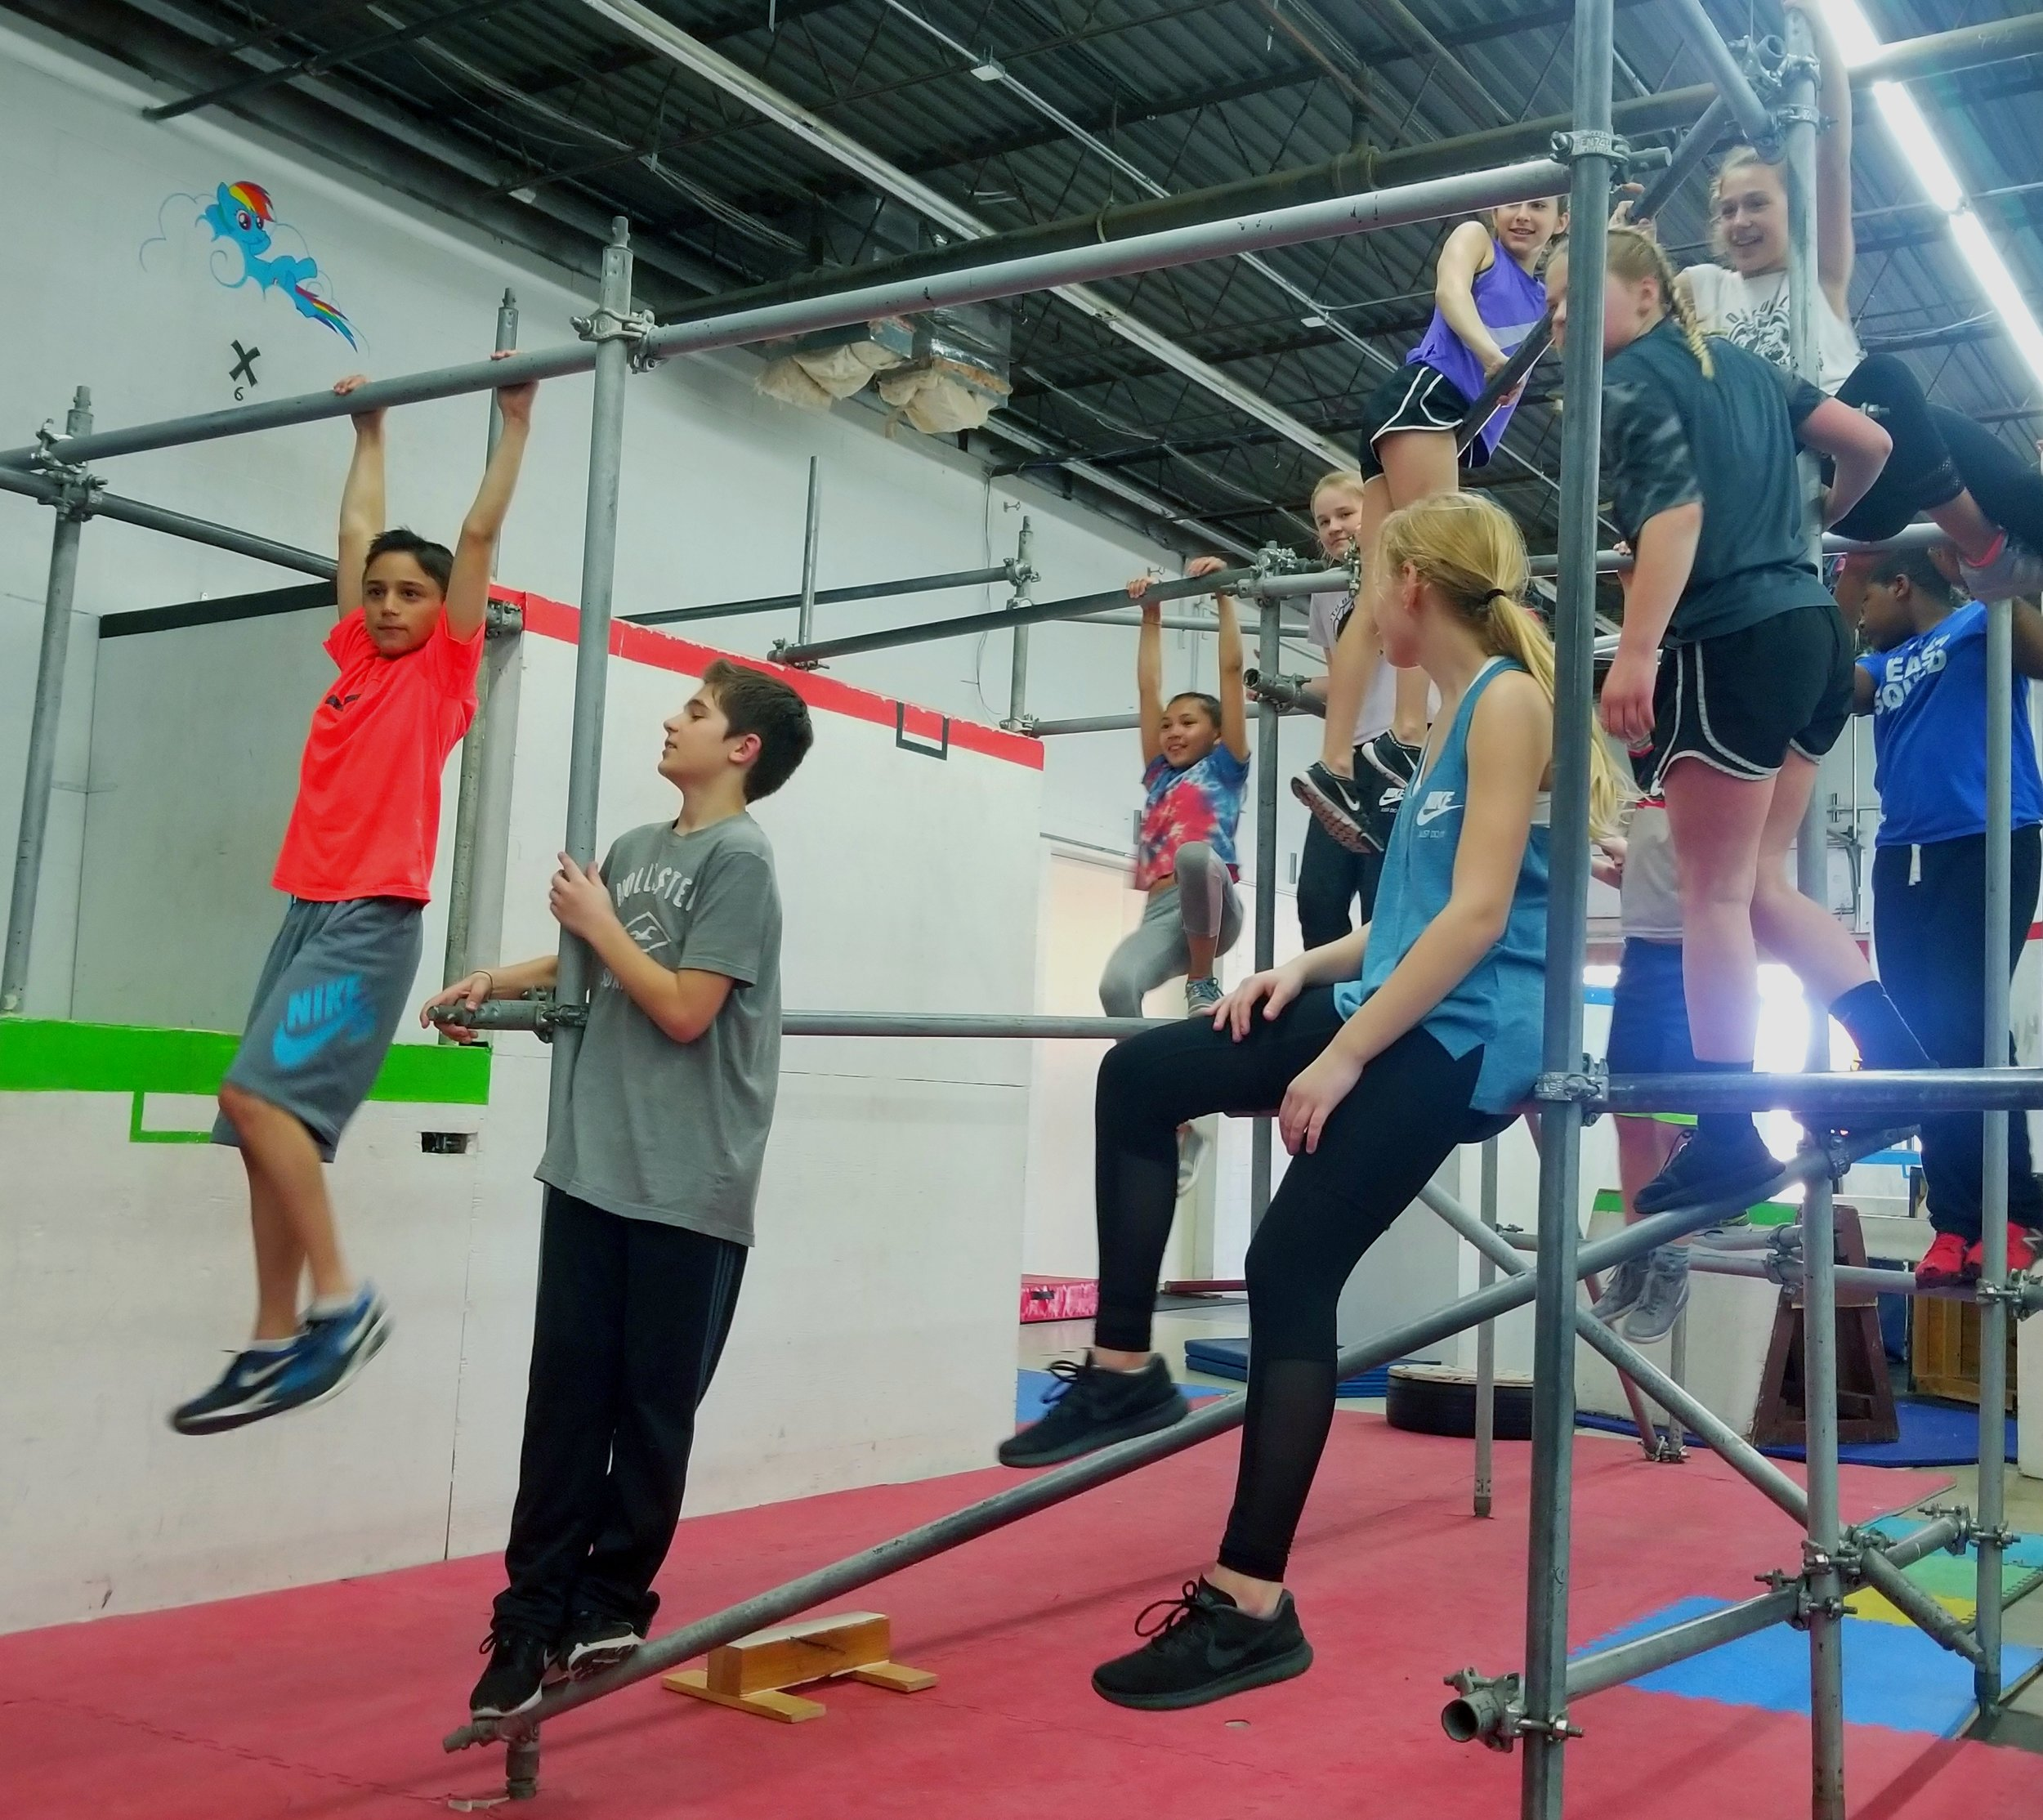 Junior Parkour Schedule - Monday | 5:30pWednesday | 6:30pThursday | 5:30pFriday | 5:30pSaturday | 10aSaturday | 3:30pSunday | 2p